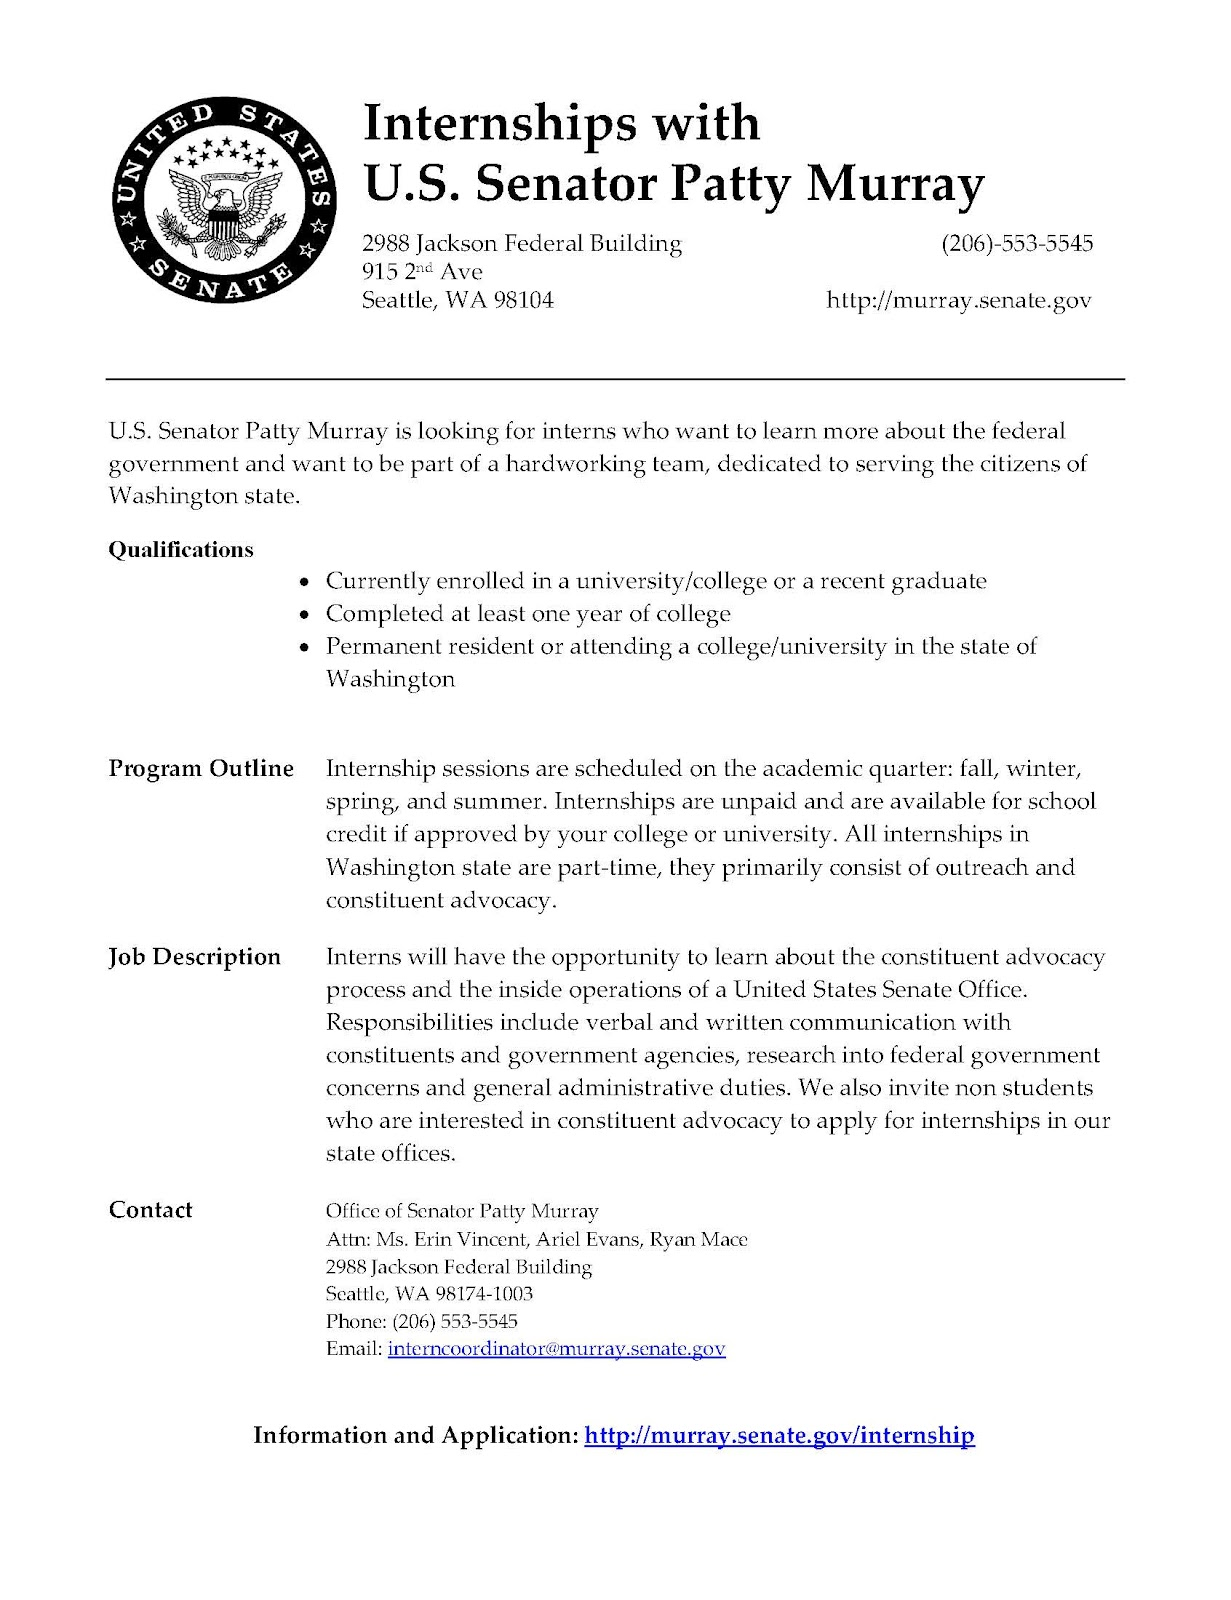 cover letter for political internship   Hadi.palmex.co